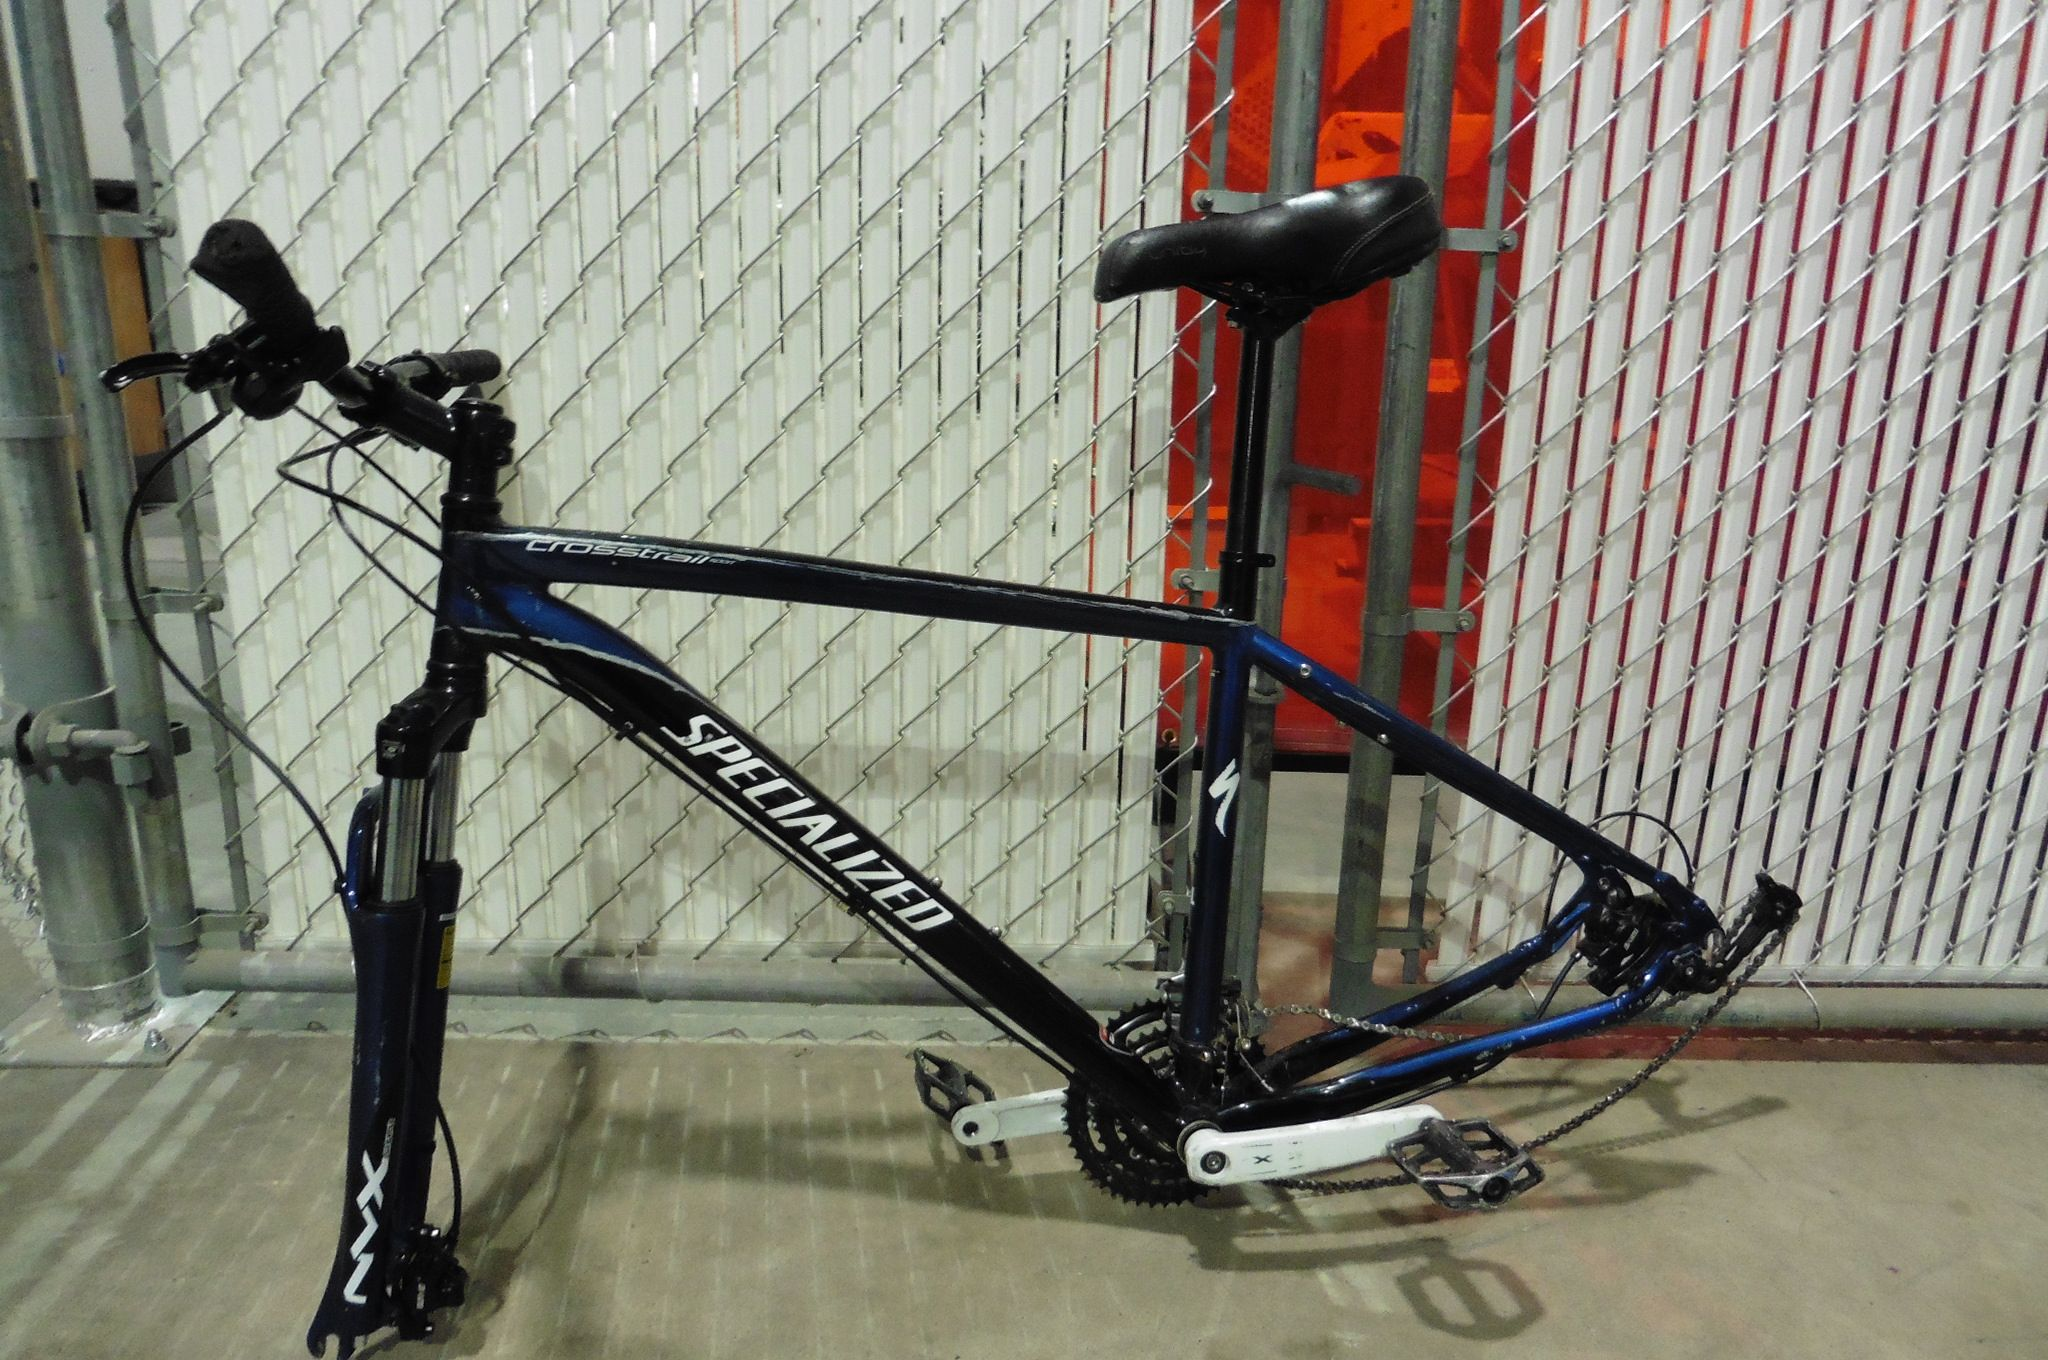 Is This Your Missing Bike This Bike Was Recovered In September